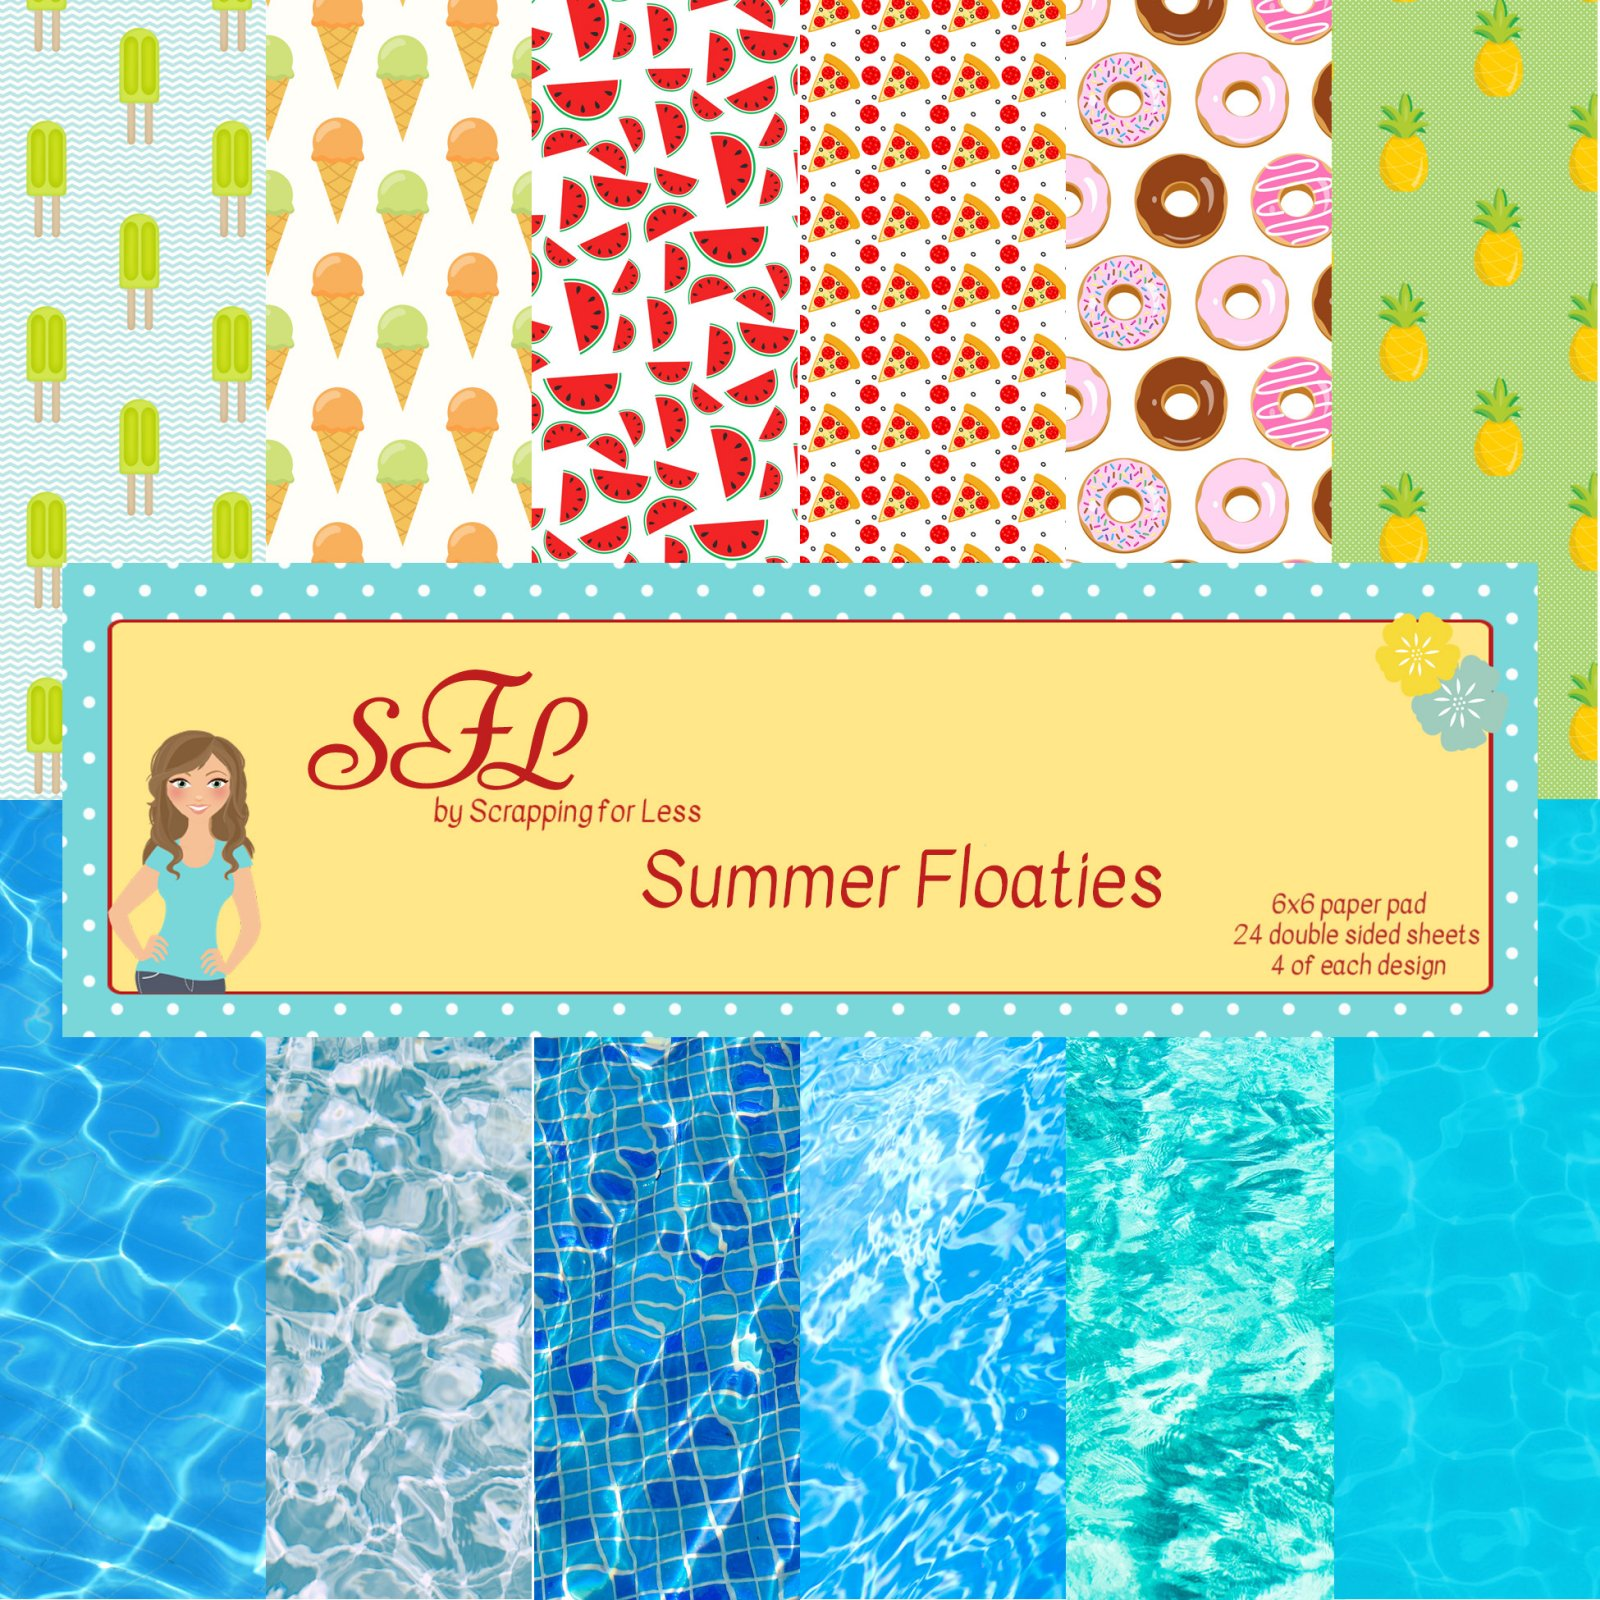 Scrapping for Less Summer Floaties 6x6 Paper Pad